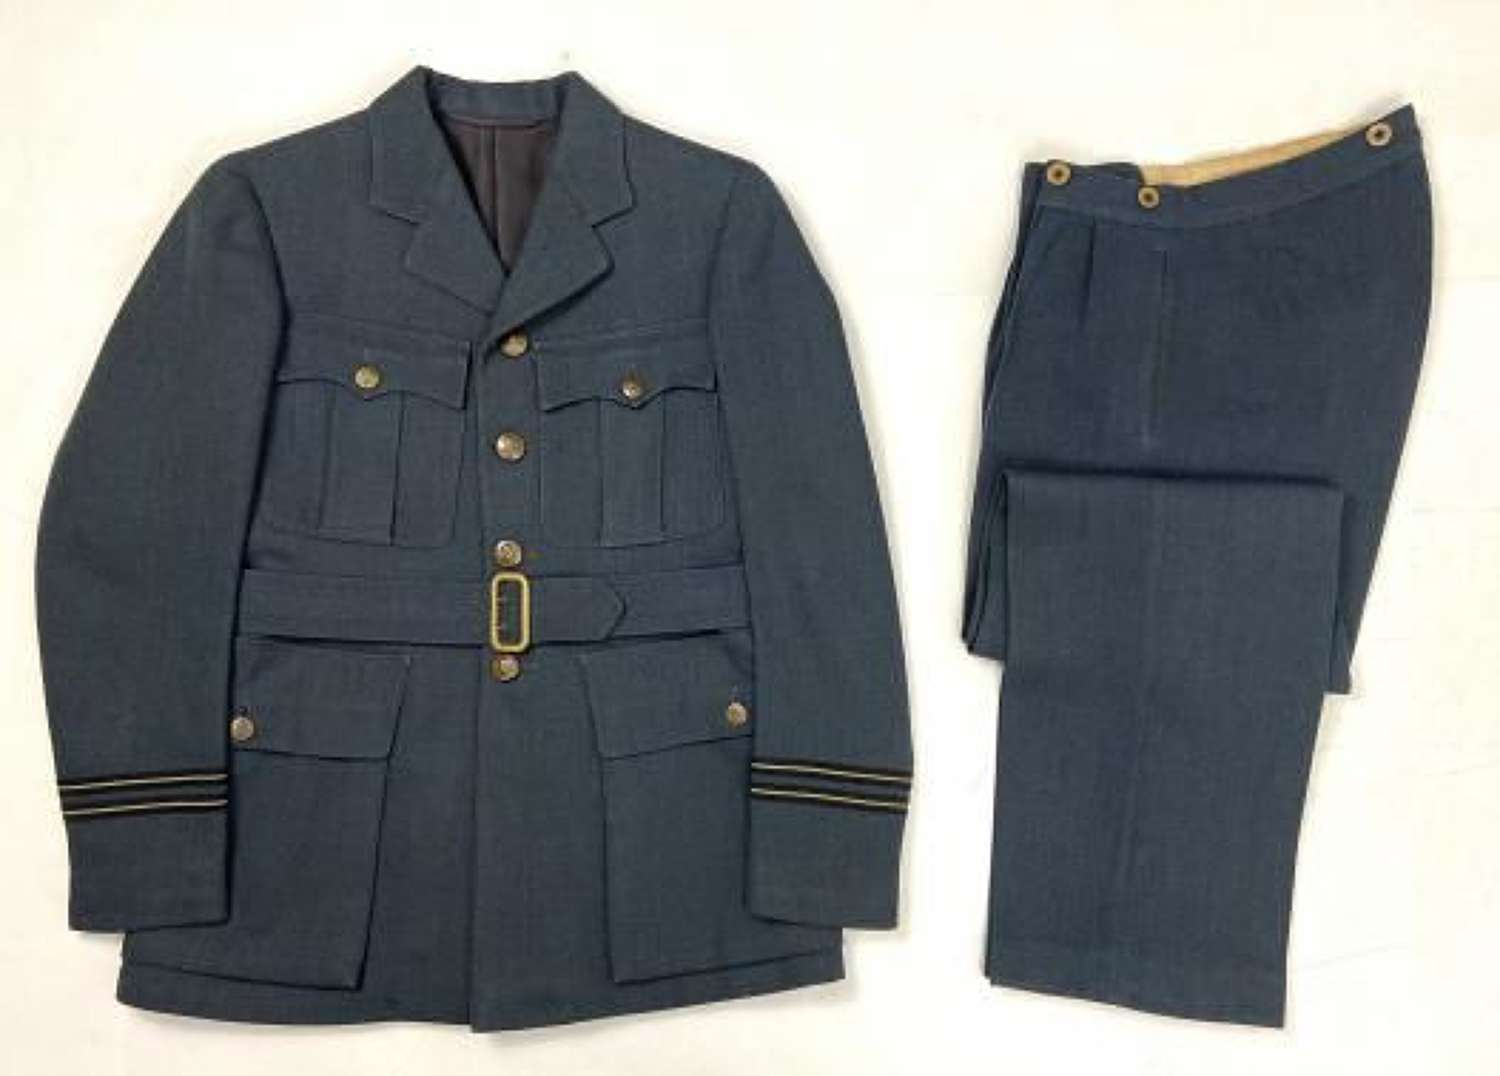 Original WW2 RAF Officers Service Dress Jacket and Trousers